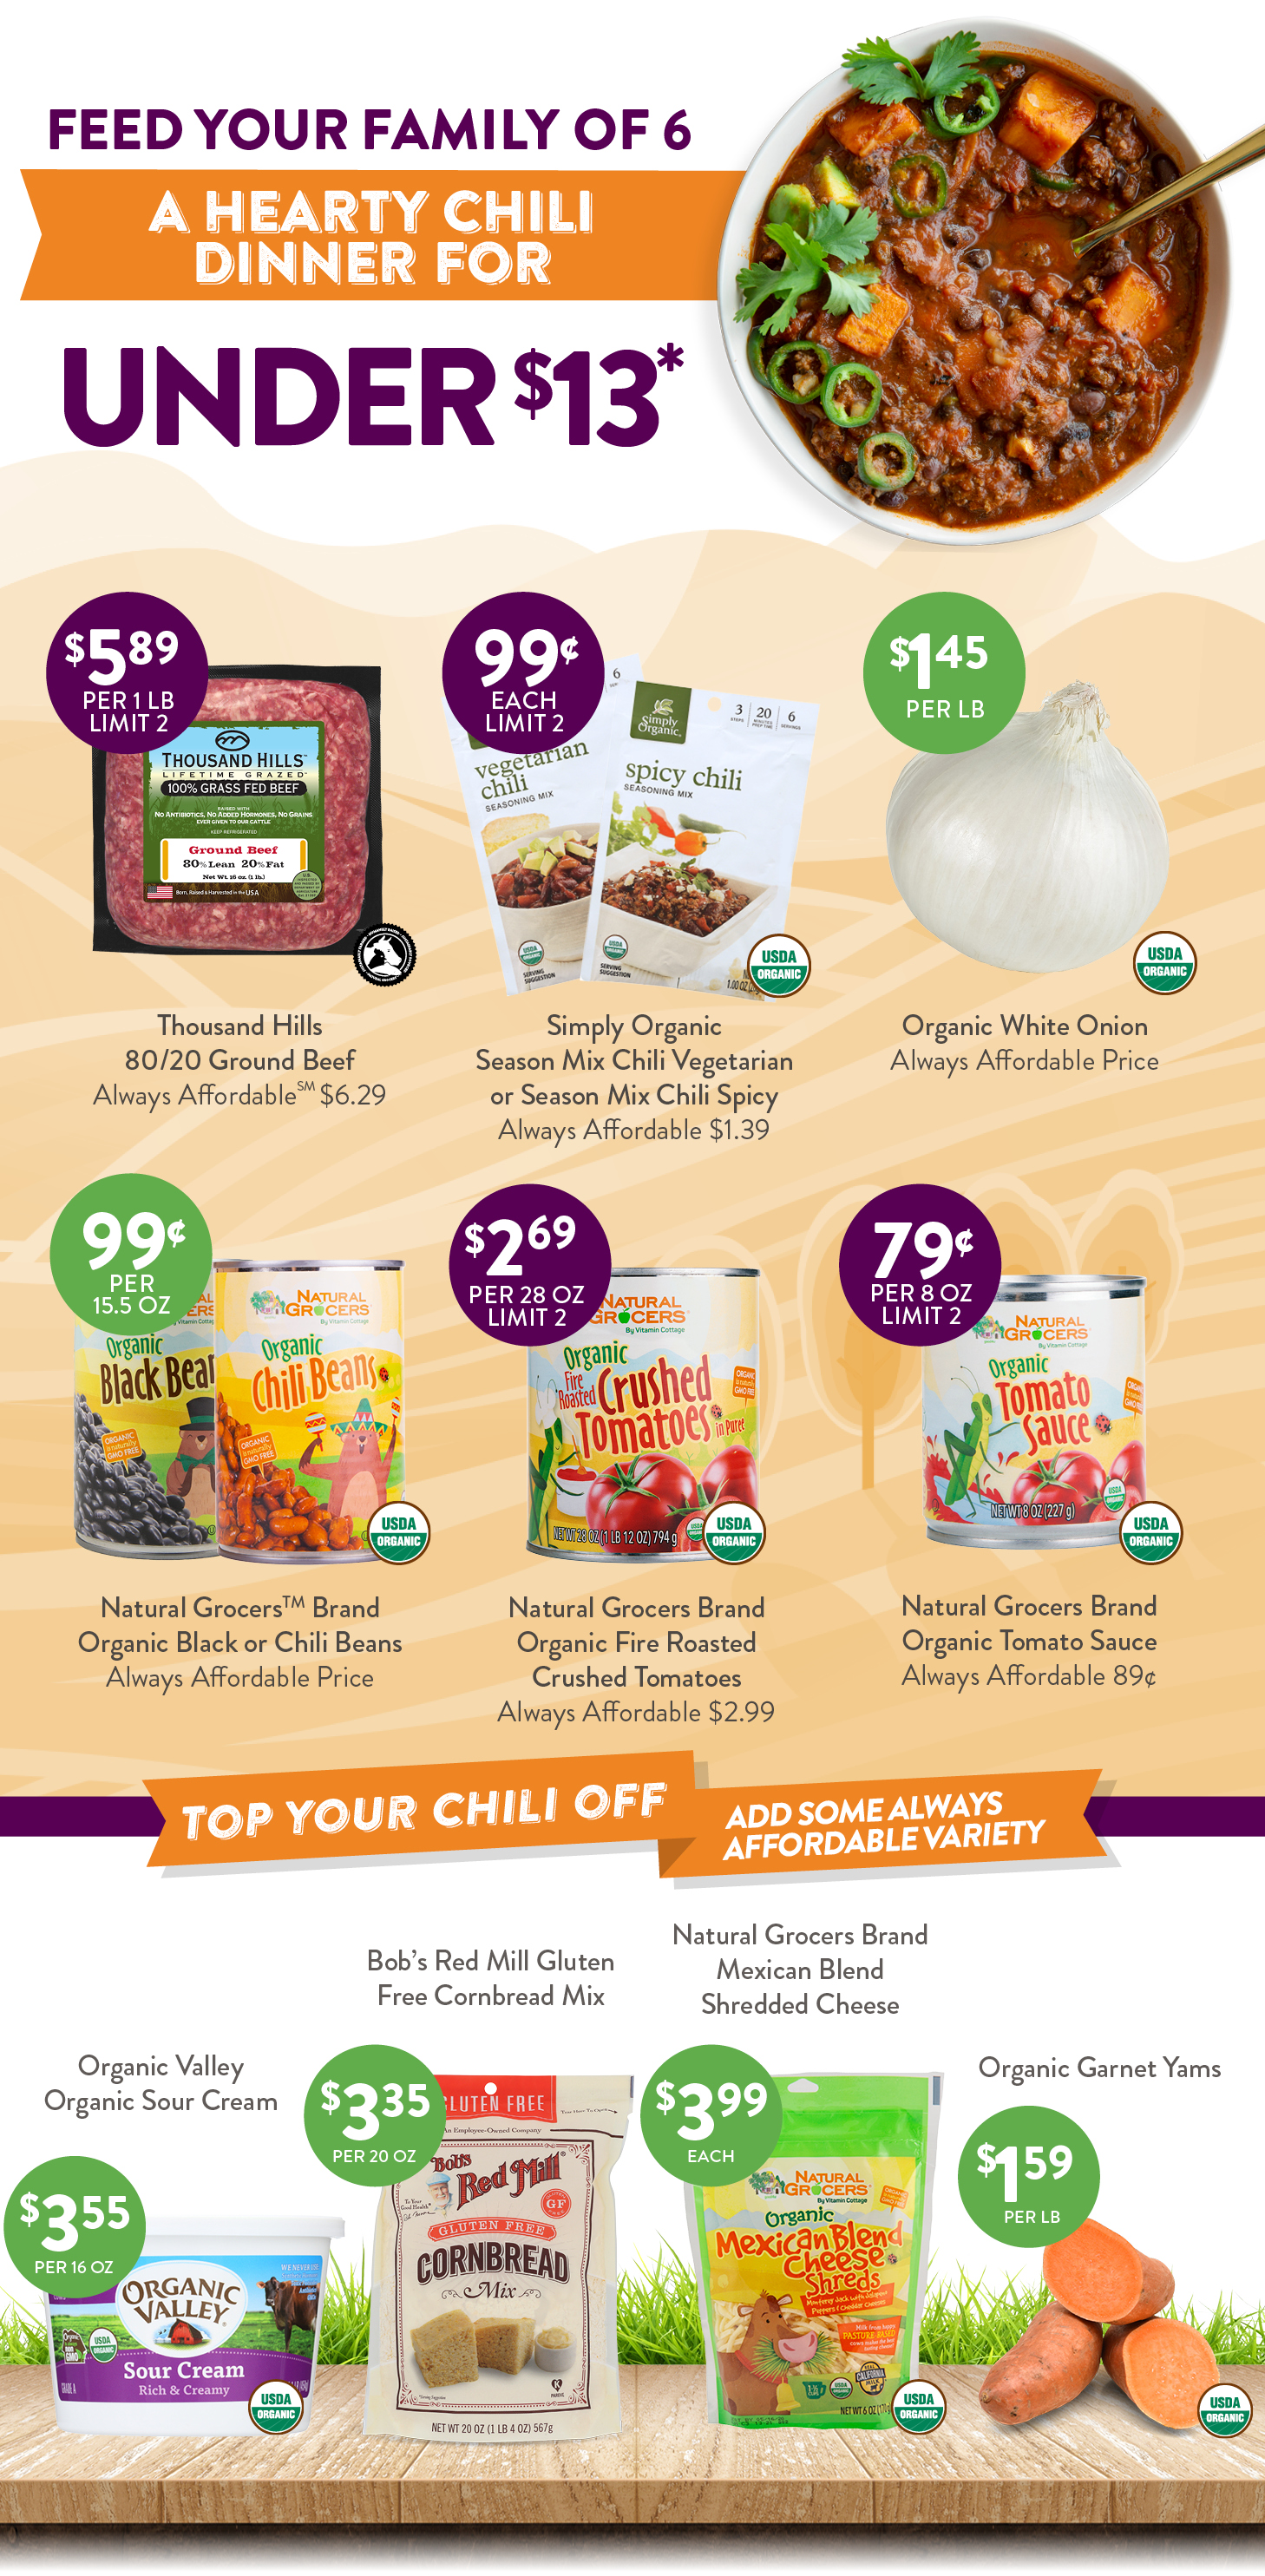 Chili meal deal pricing